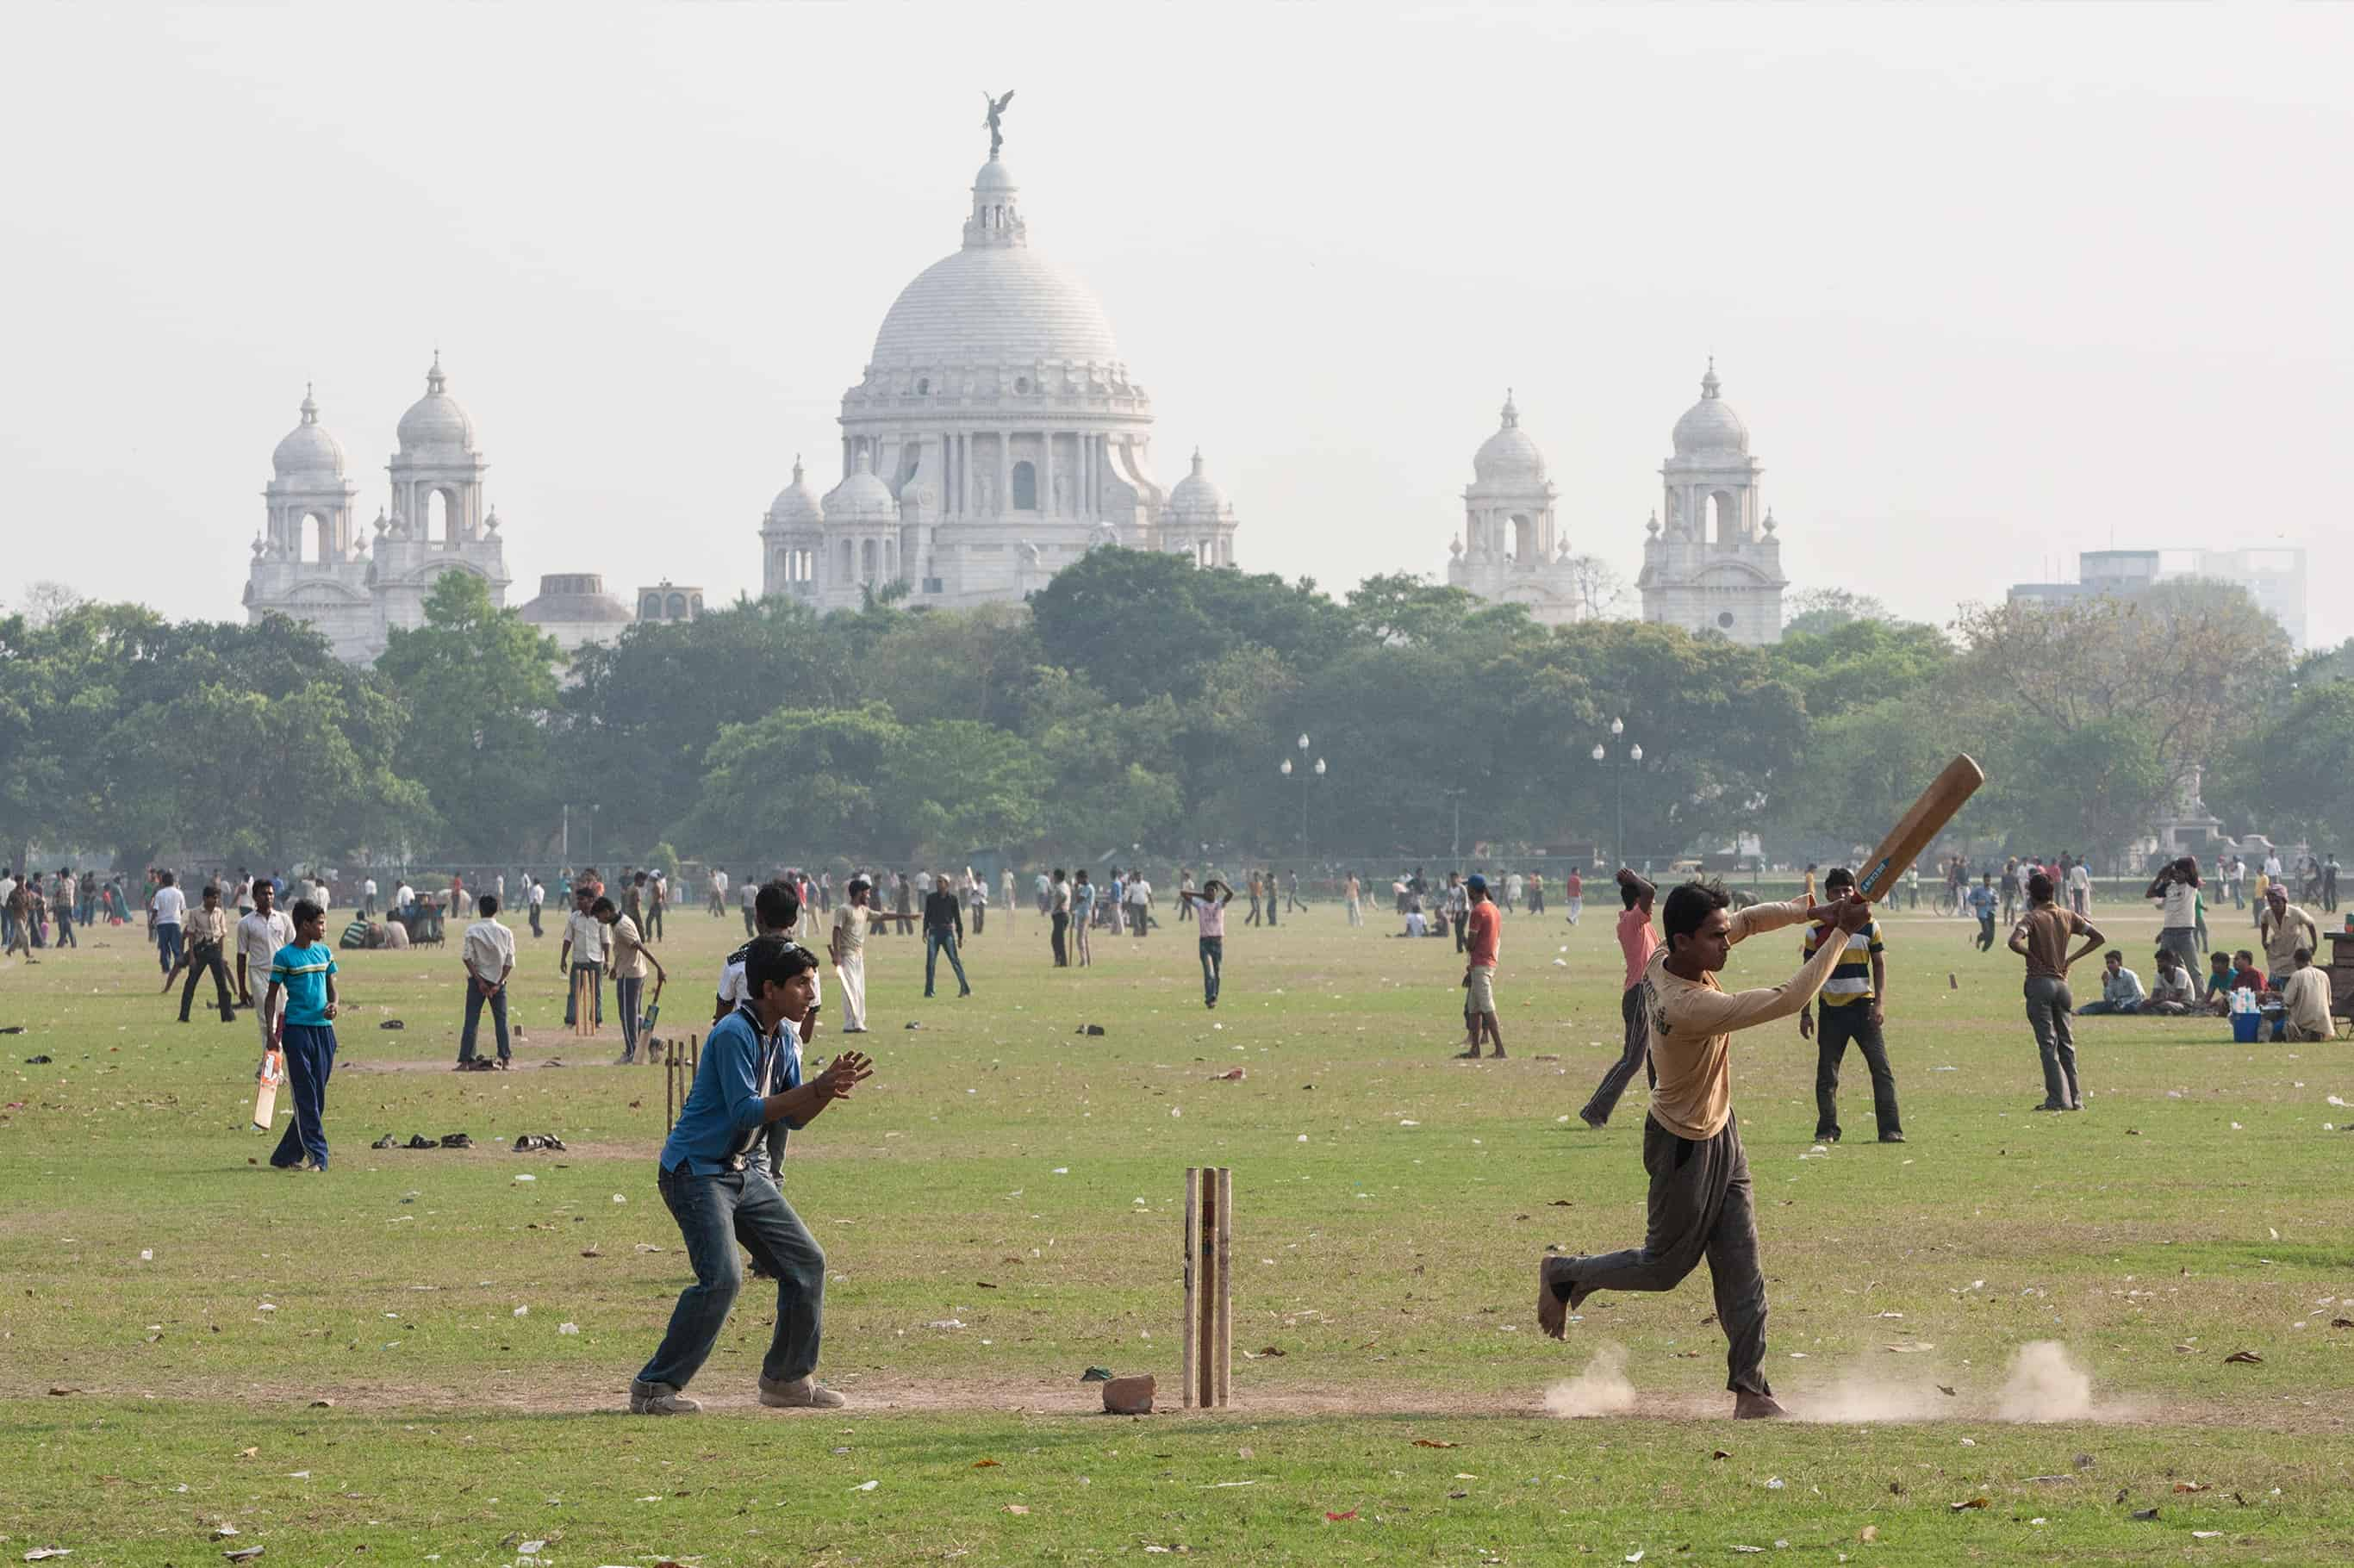 Playing cricket in Calcutta